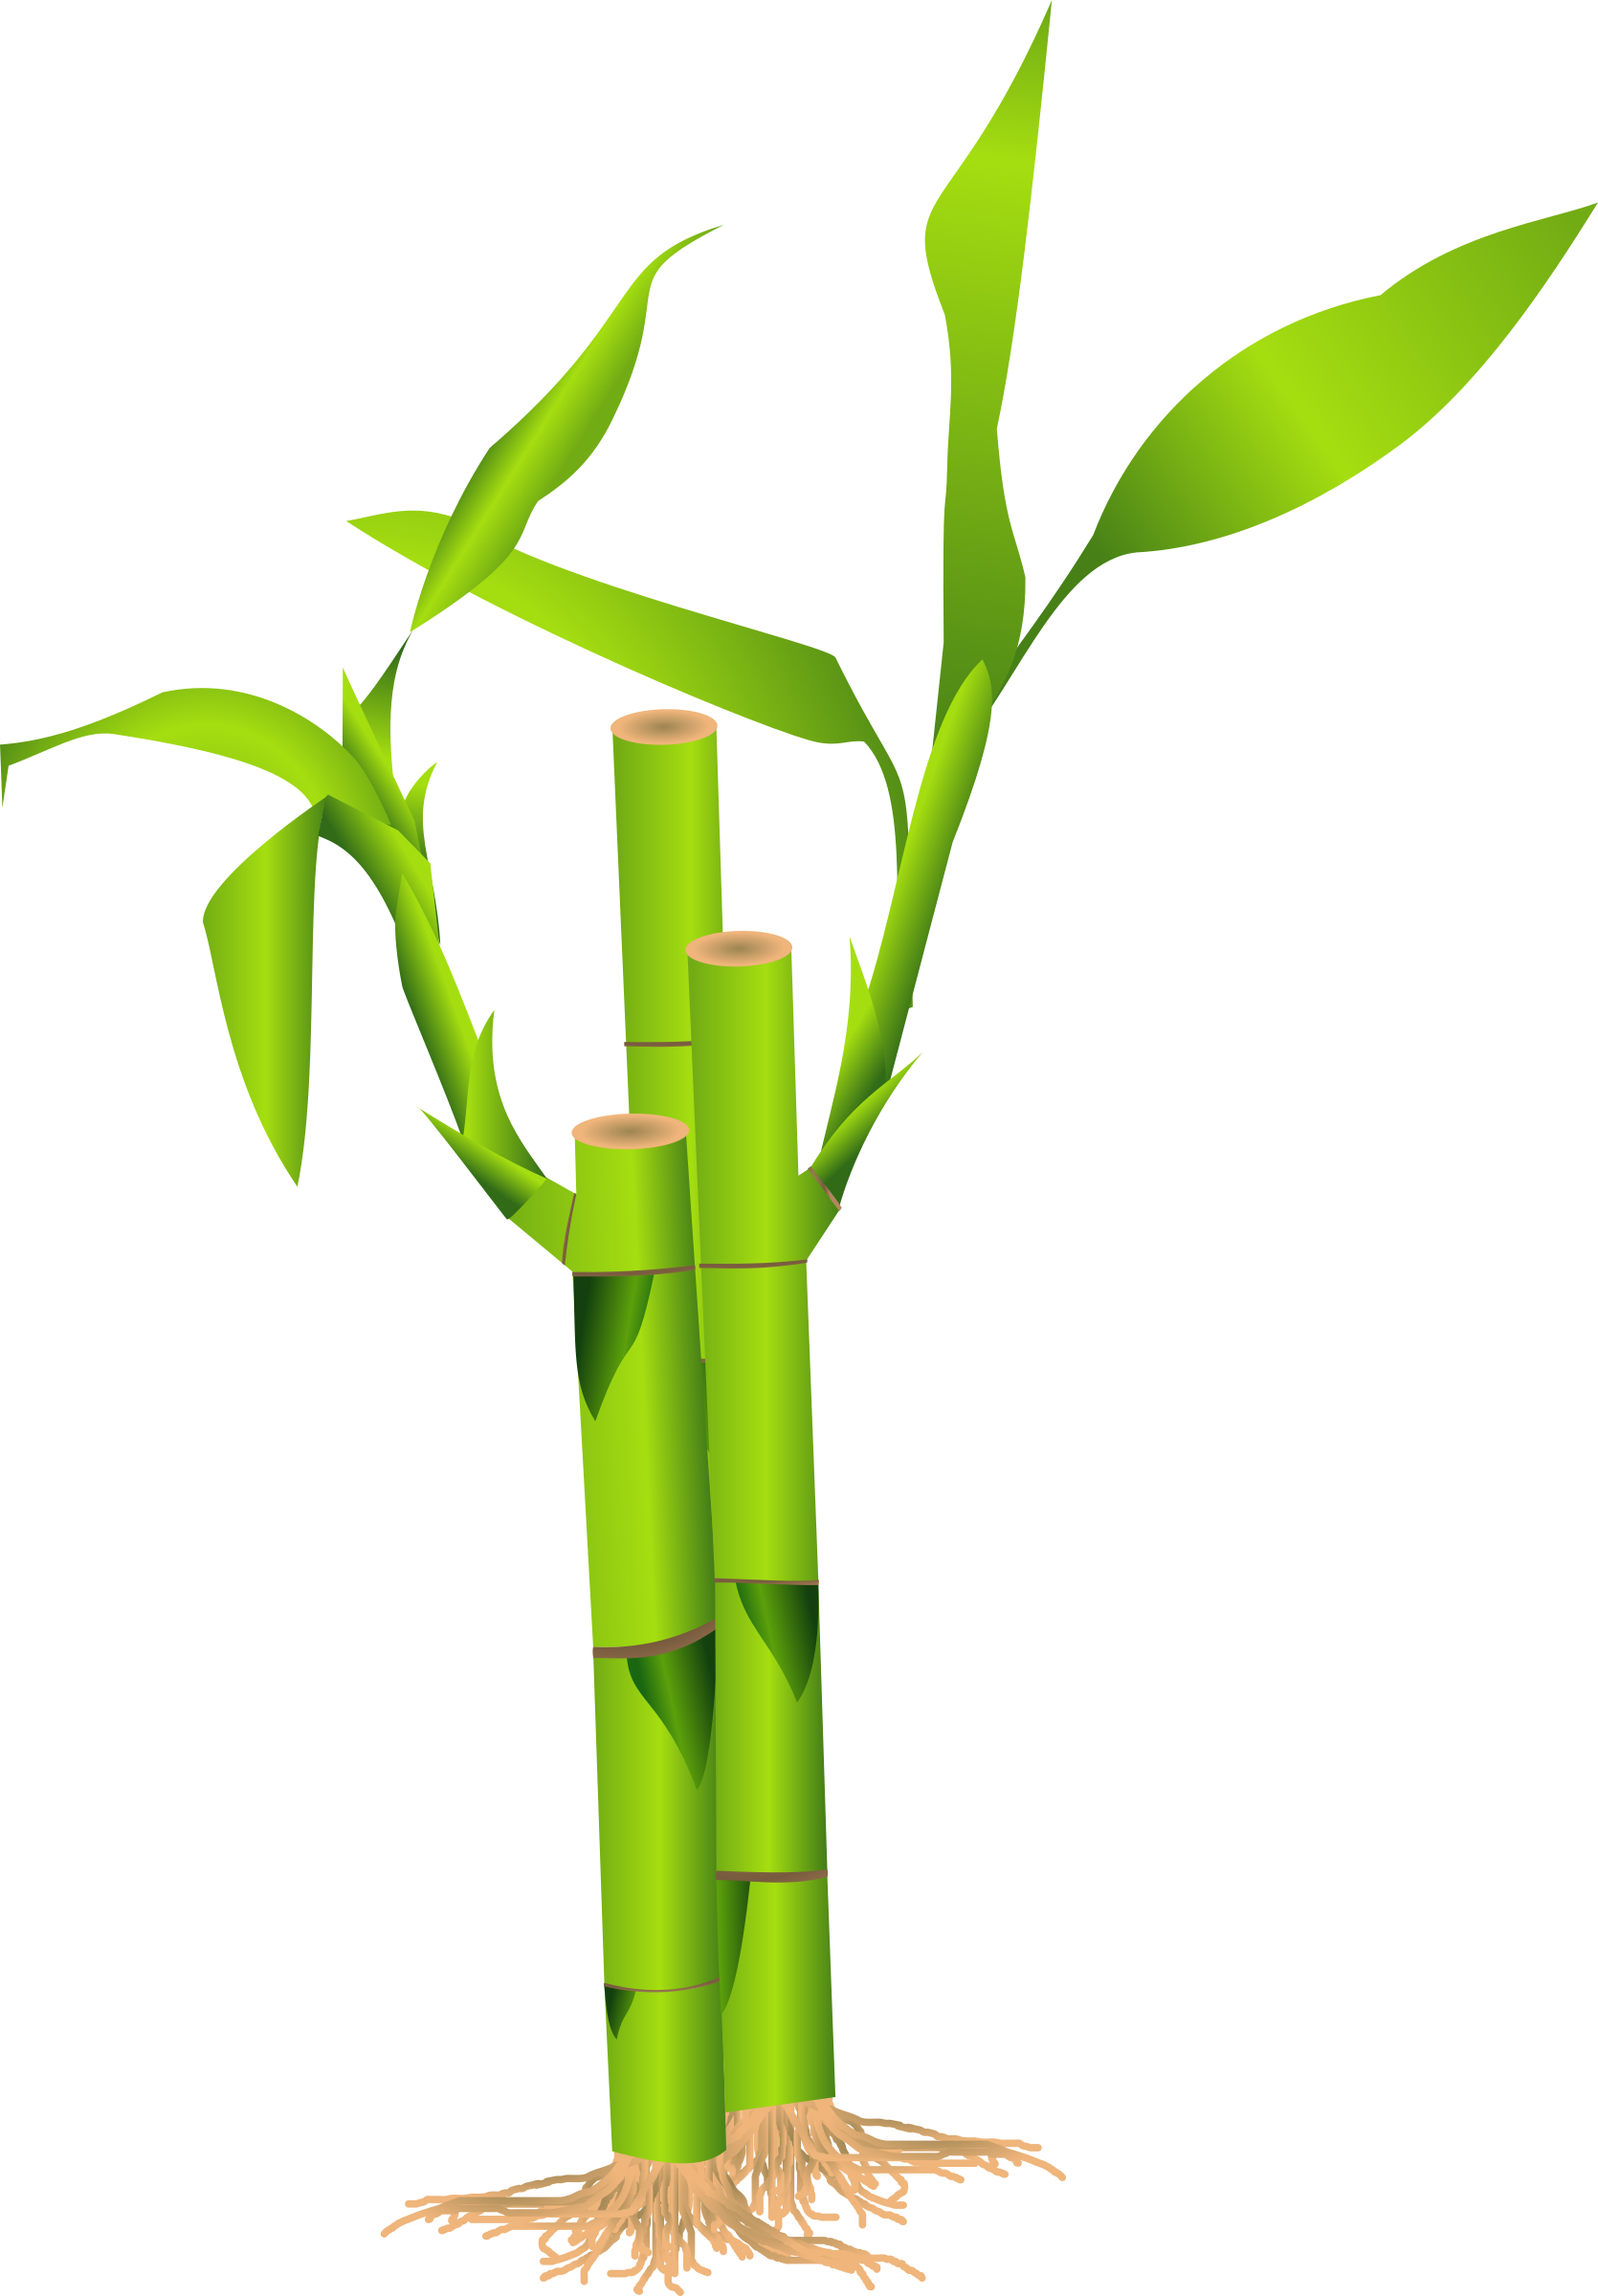 Bamboo clipart #8, Download drawings